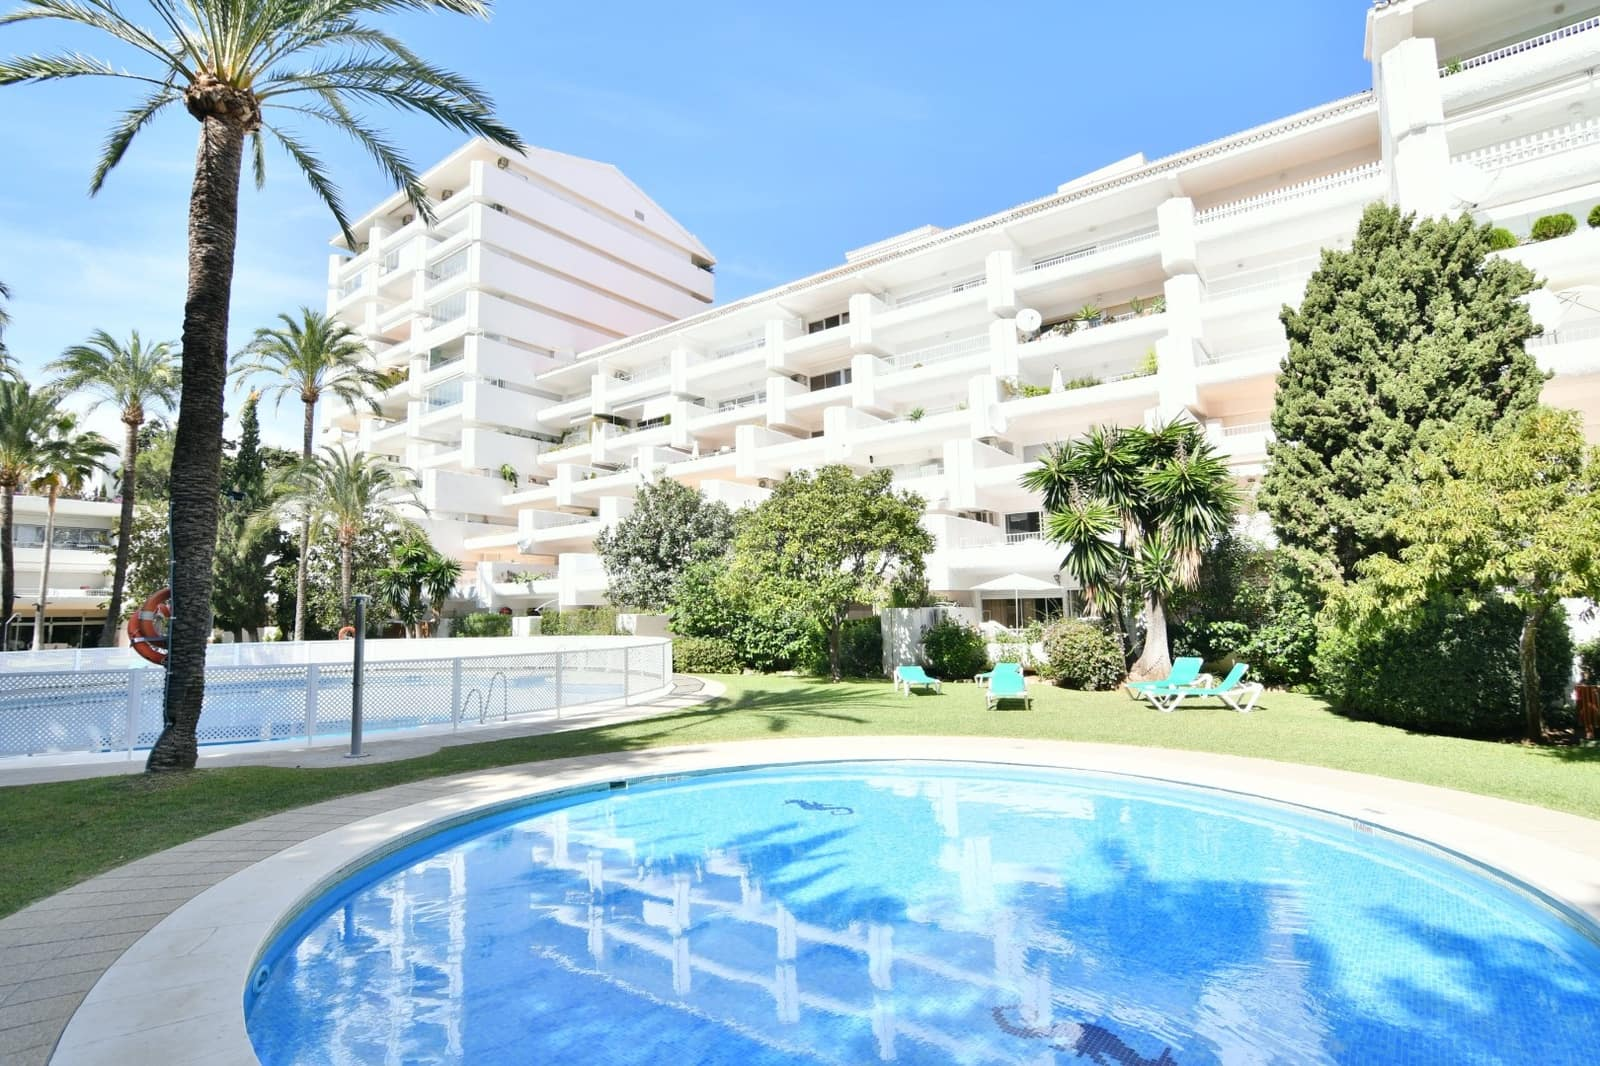 2 bedroom Apartment for sale in Marbella with pool garage - € 295,000 (Ref: 4062104)